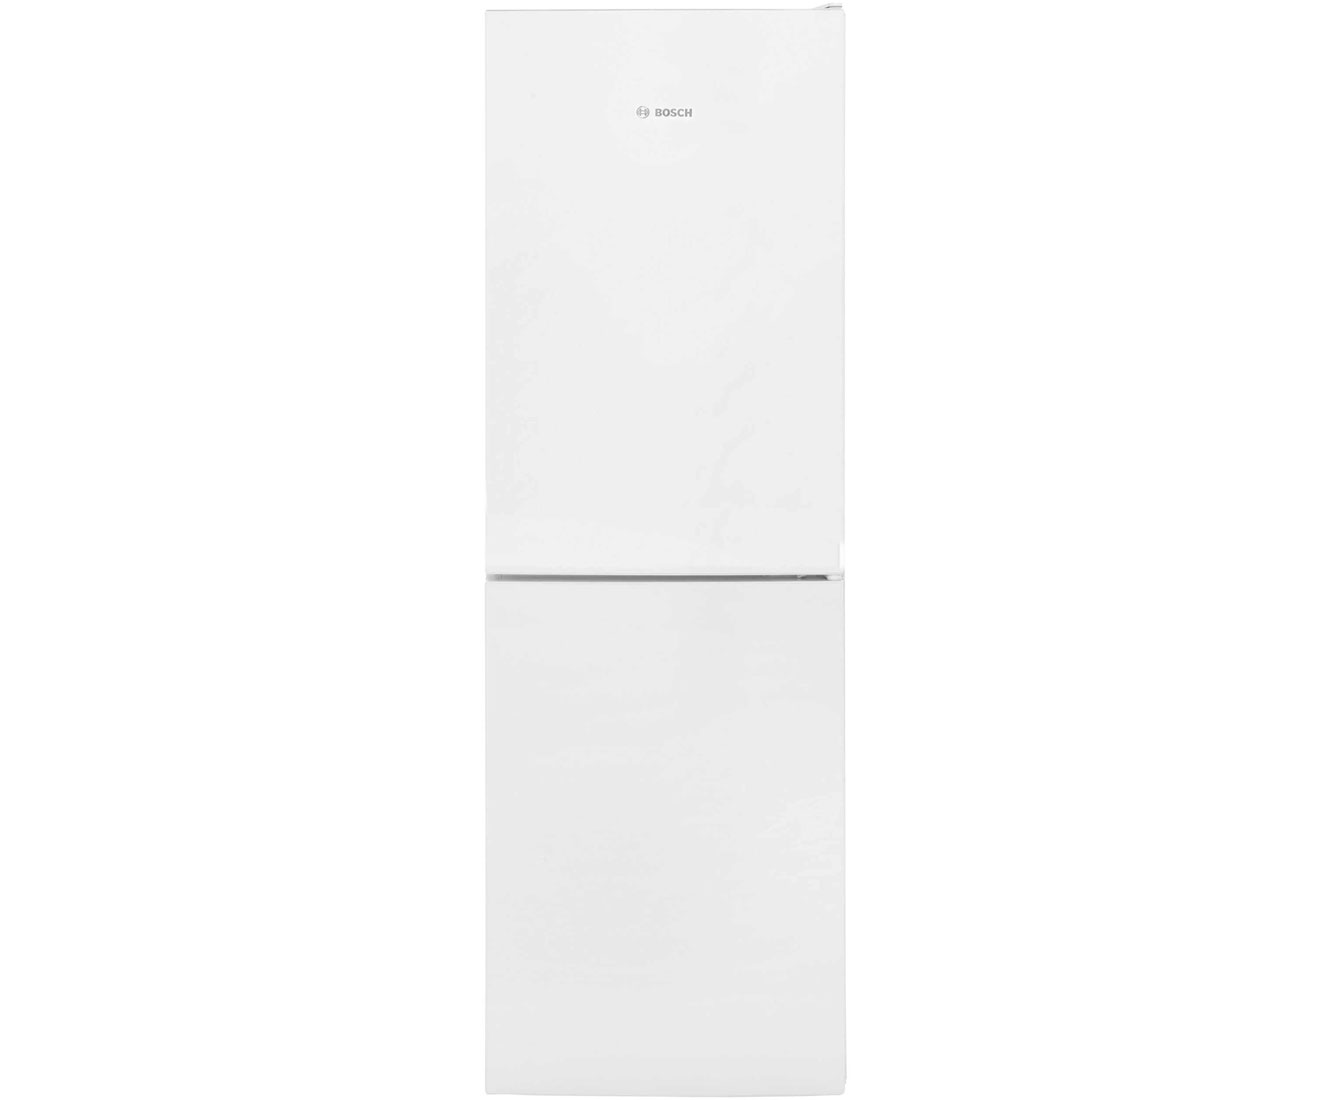 Bosch Serie 4 KGN34VW30G Free Standing Fridge Freezer Frost Free in White